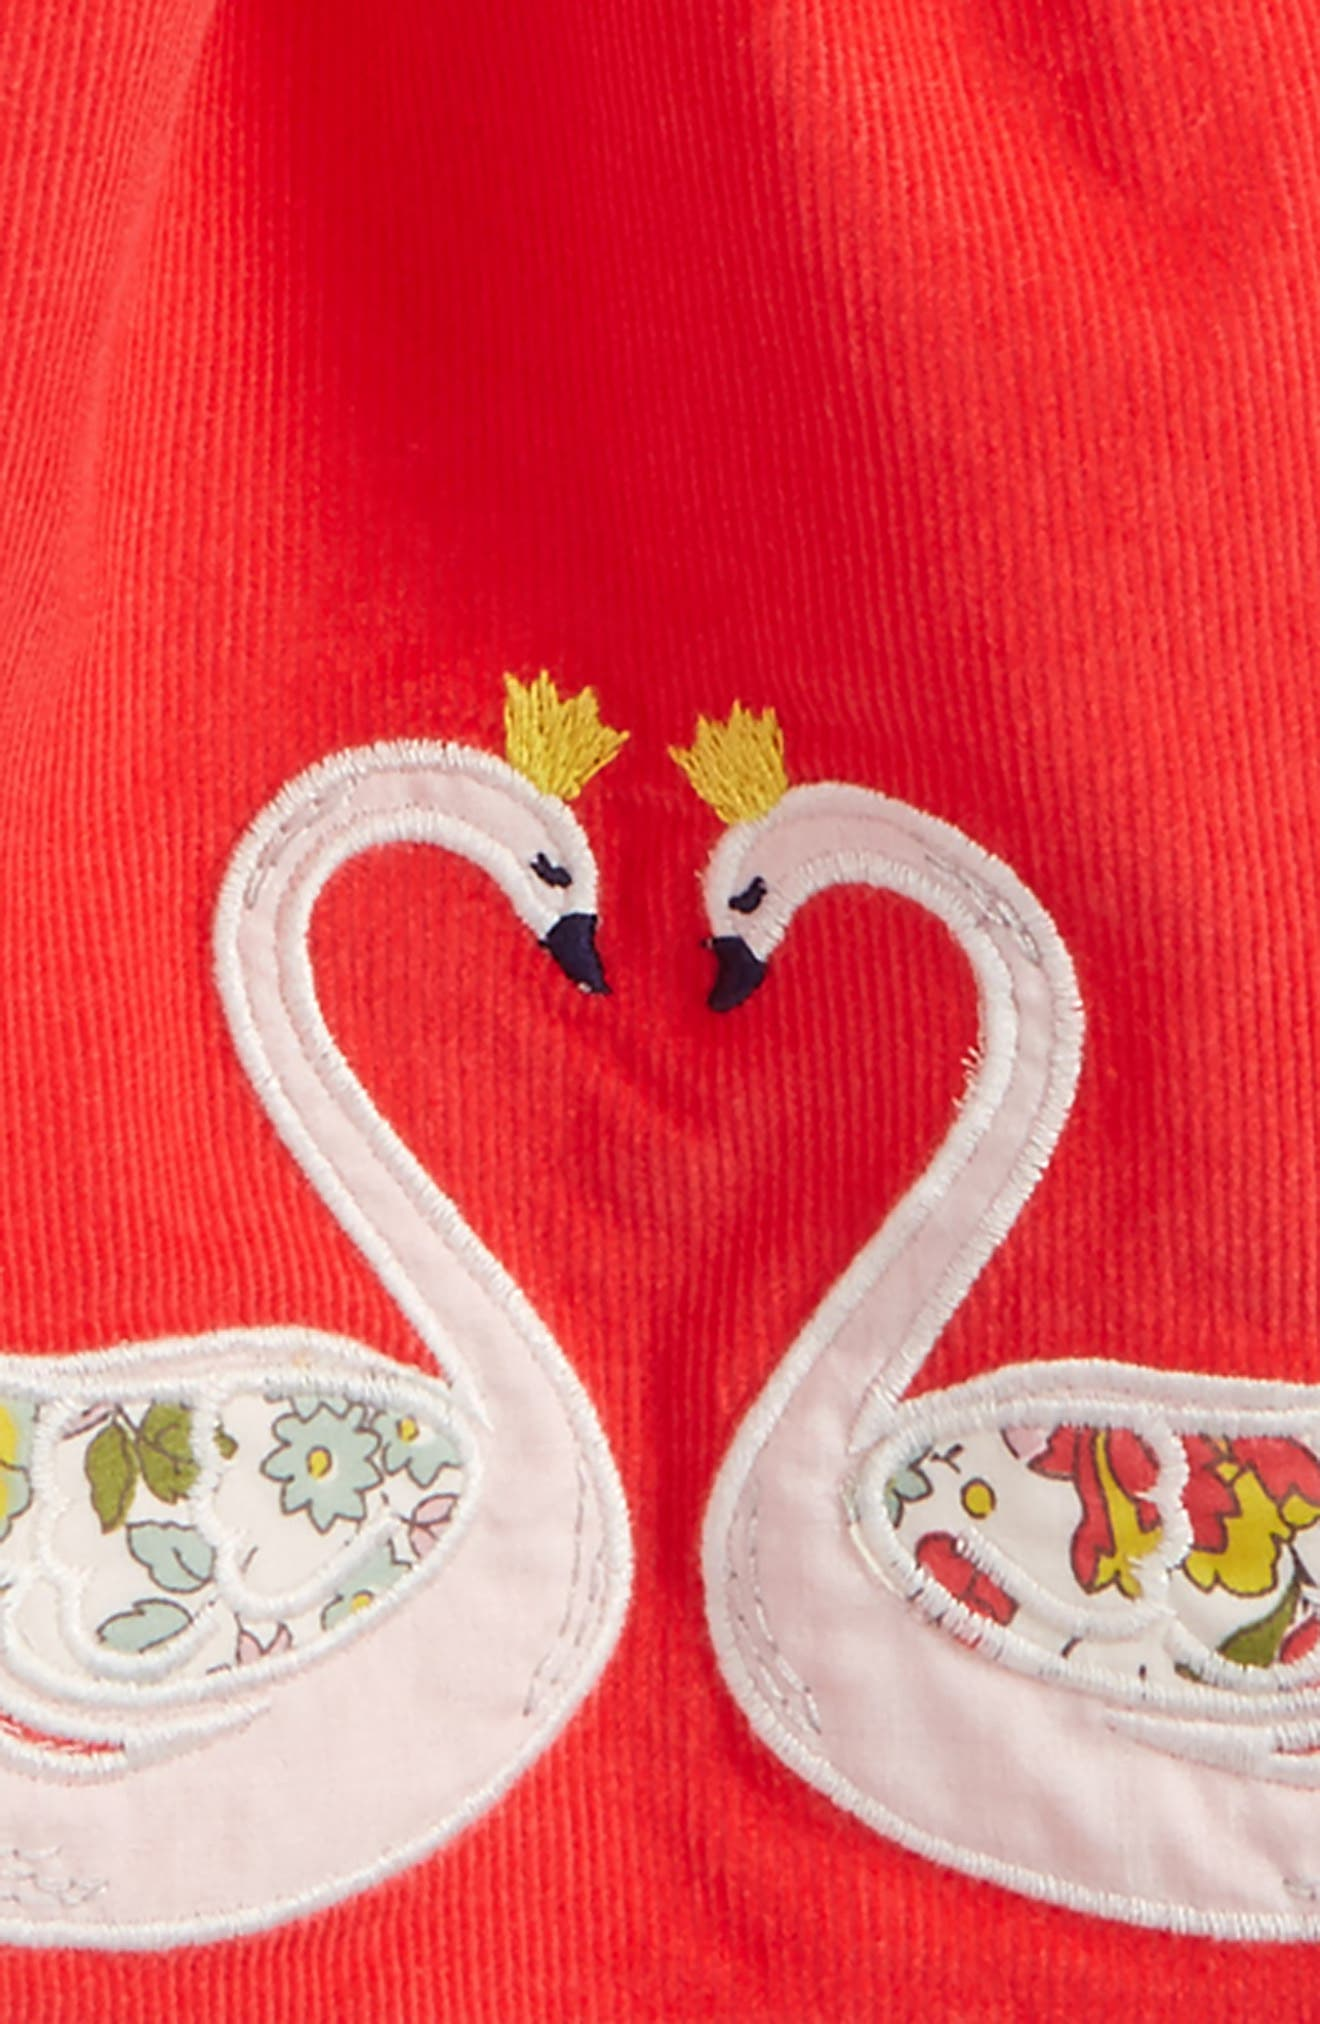 Alternate Image 2  - Mini Boden Fairytale Appliqué Corduroy Skirt (Toddler Girls, Little Girls & Big Girls)